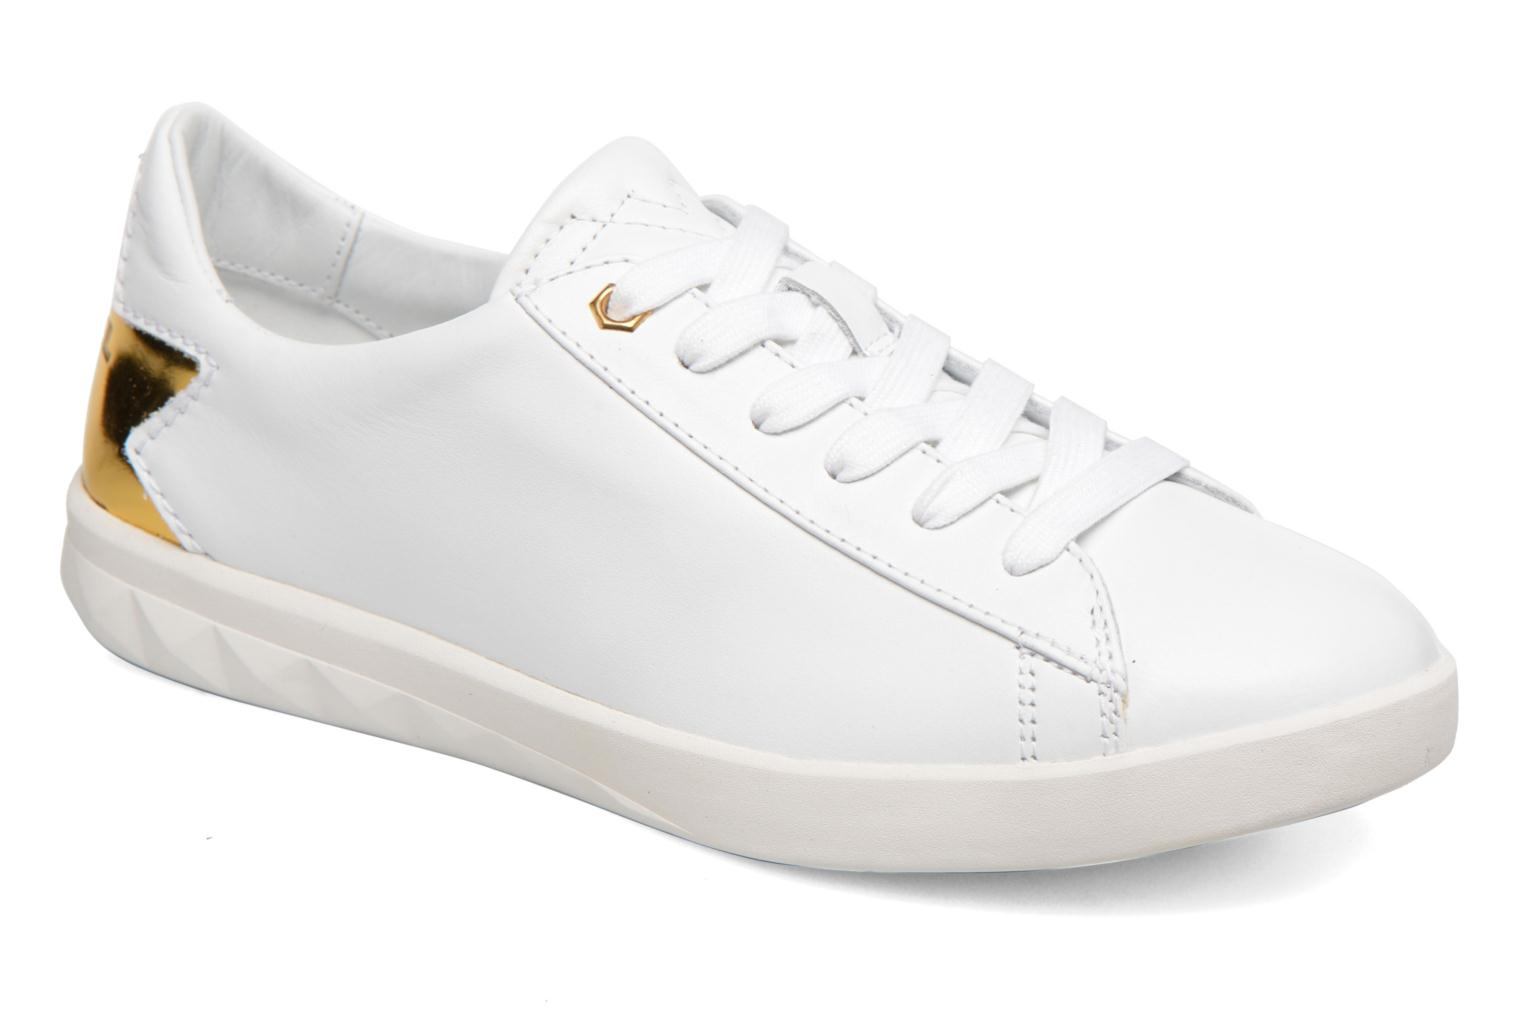 S-Olstice Low W White/gold